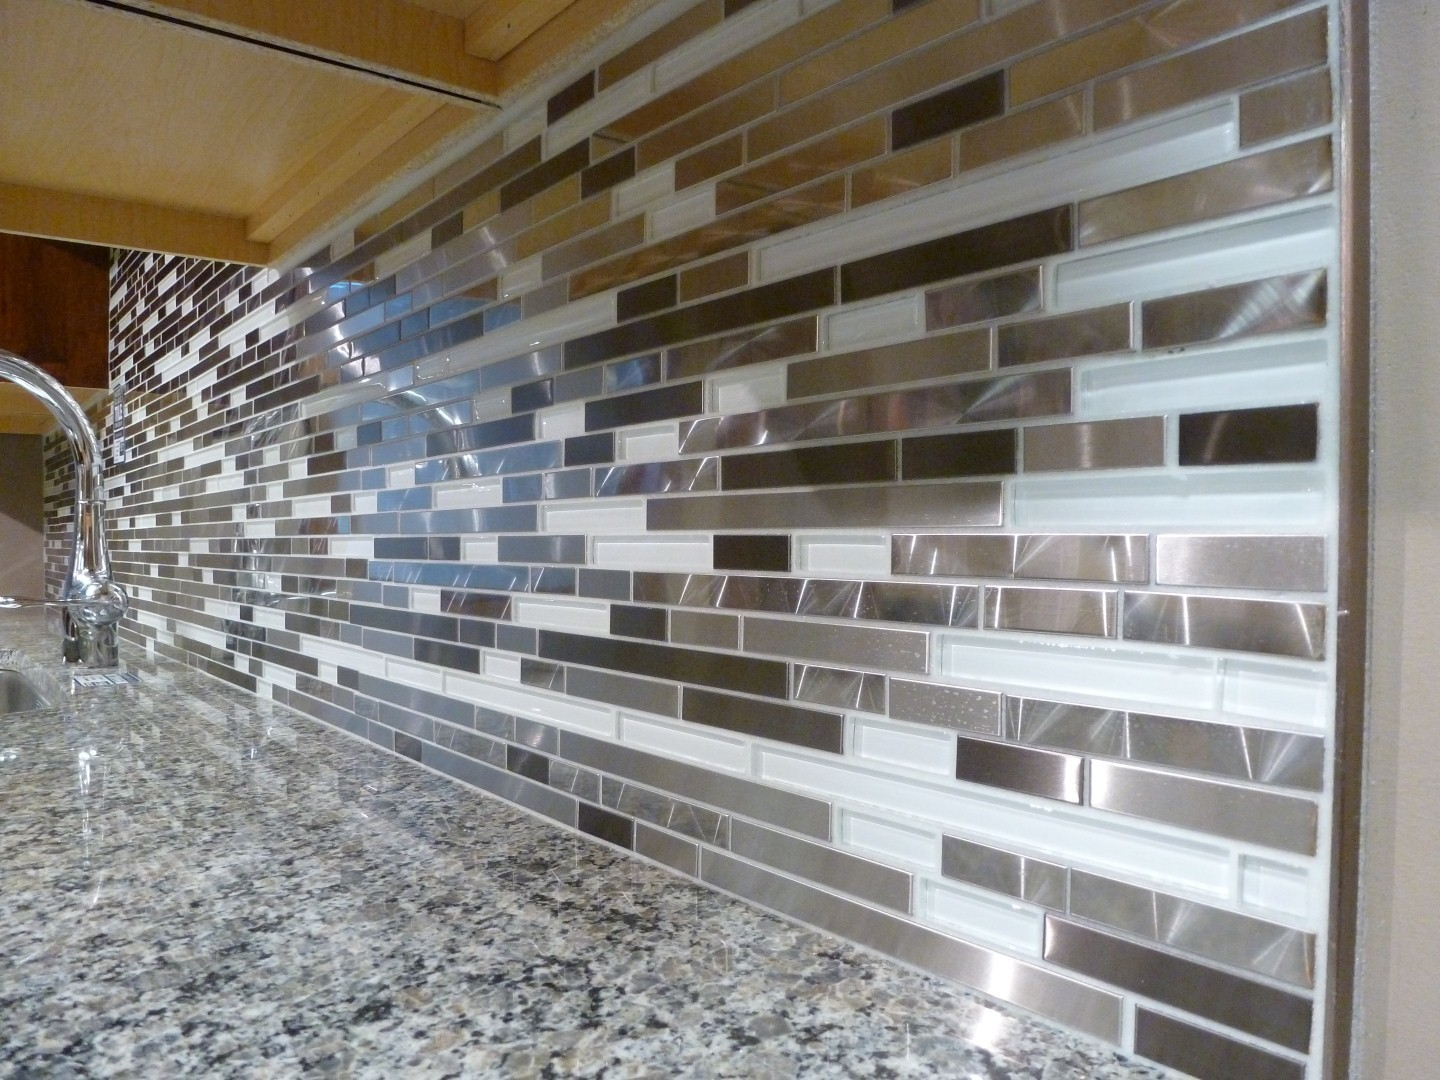 Install Mosaic Tile Backsplash